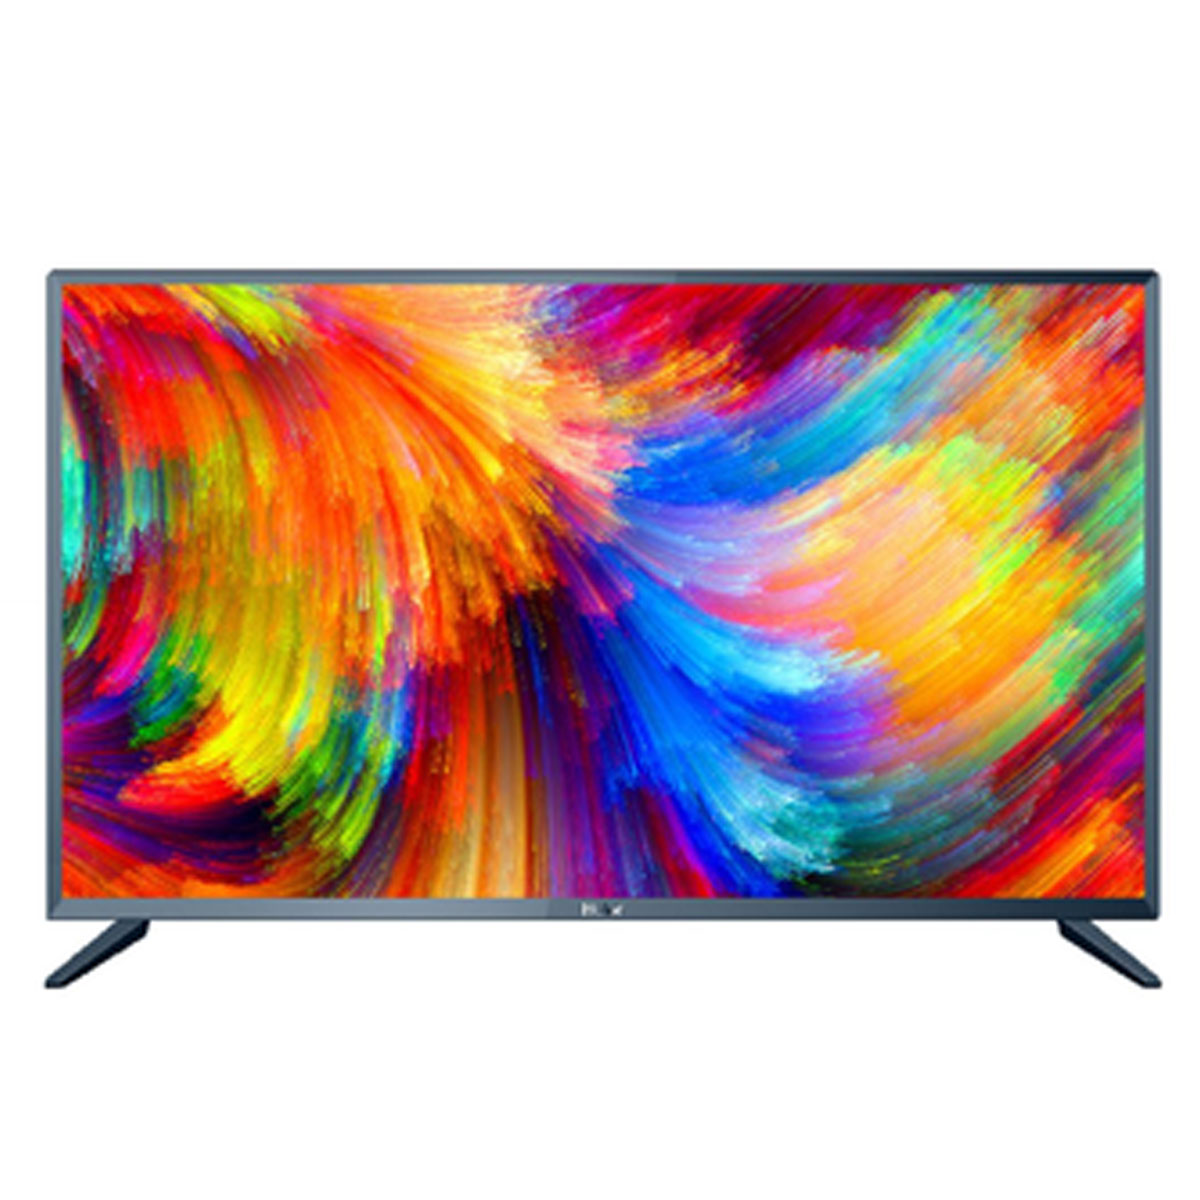 Haier 32 Inch Smart HD LED TV (LE32K6600G)